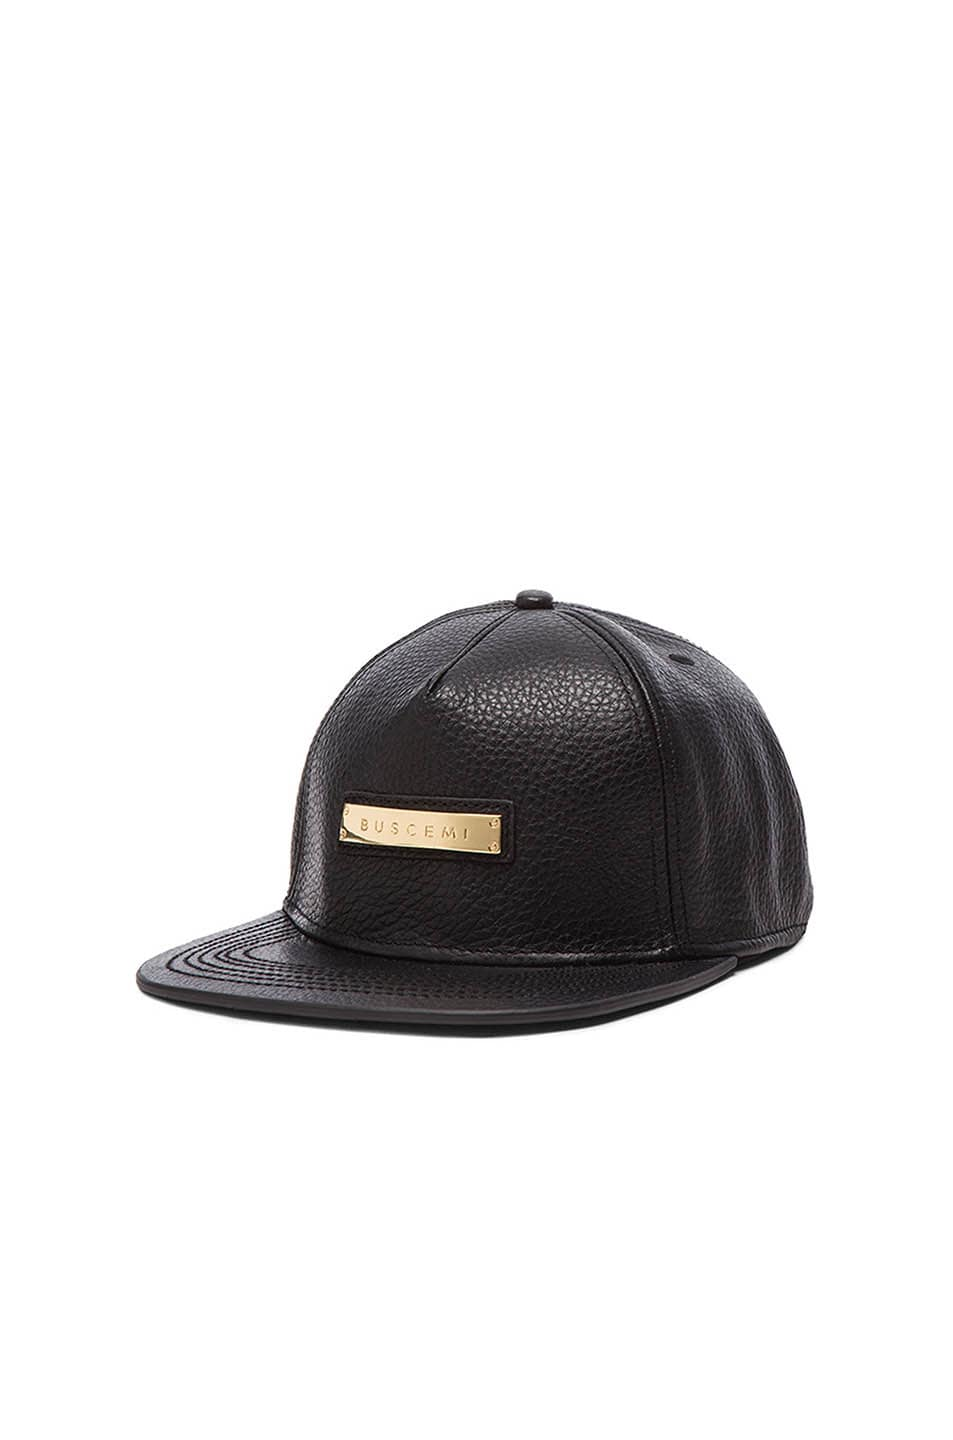 Image 2 of Buscemi Screwback Hat in Black